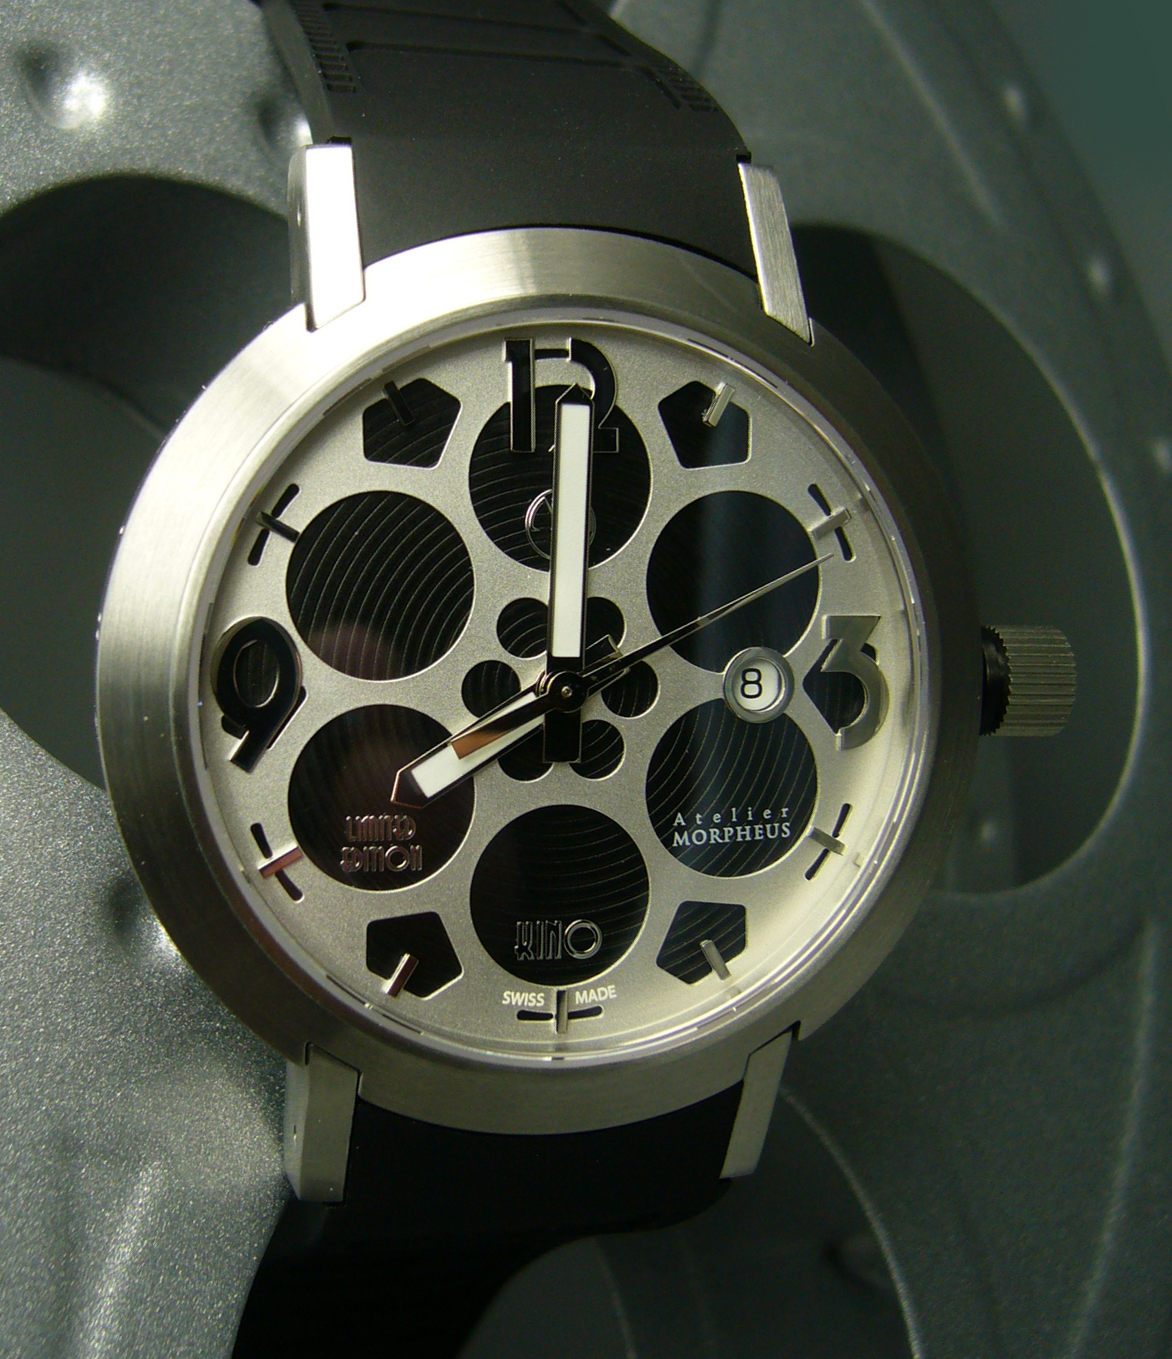 The Cinema watch from Morpheus